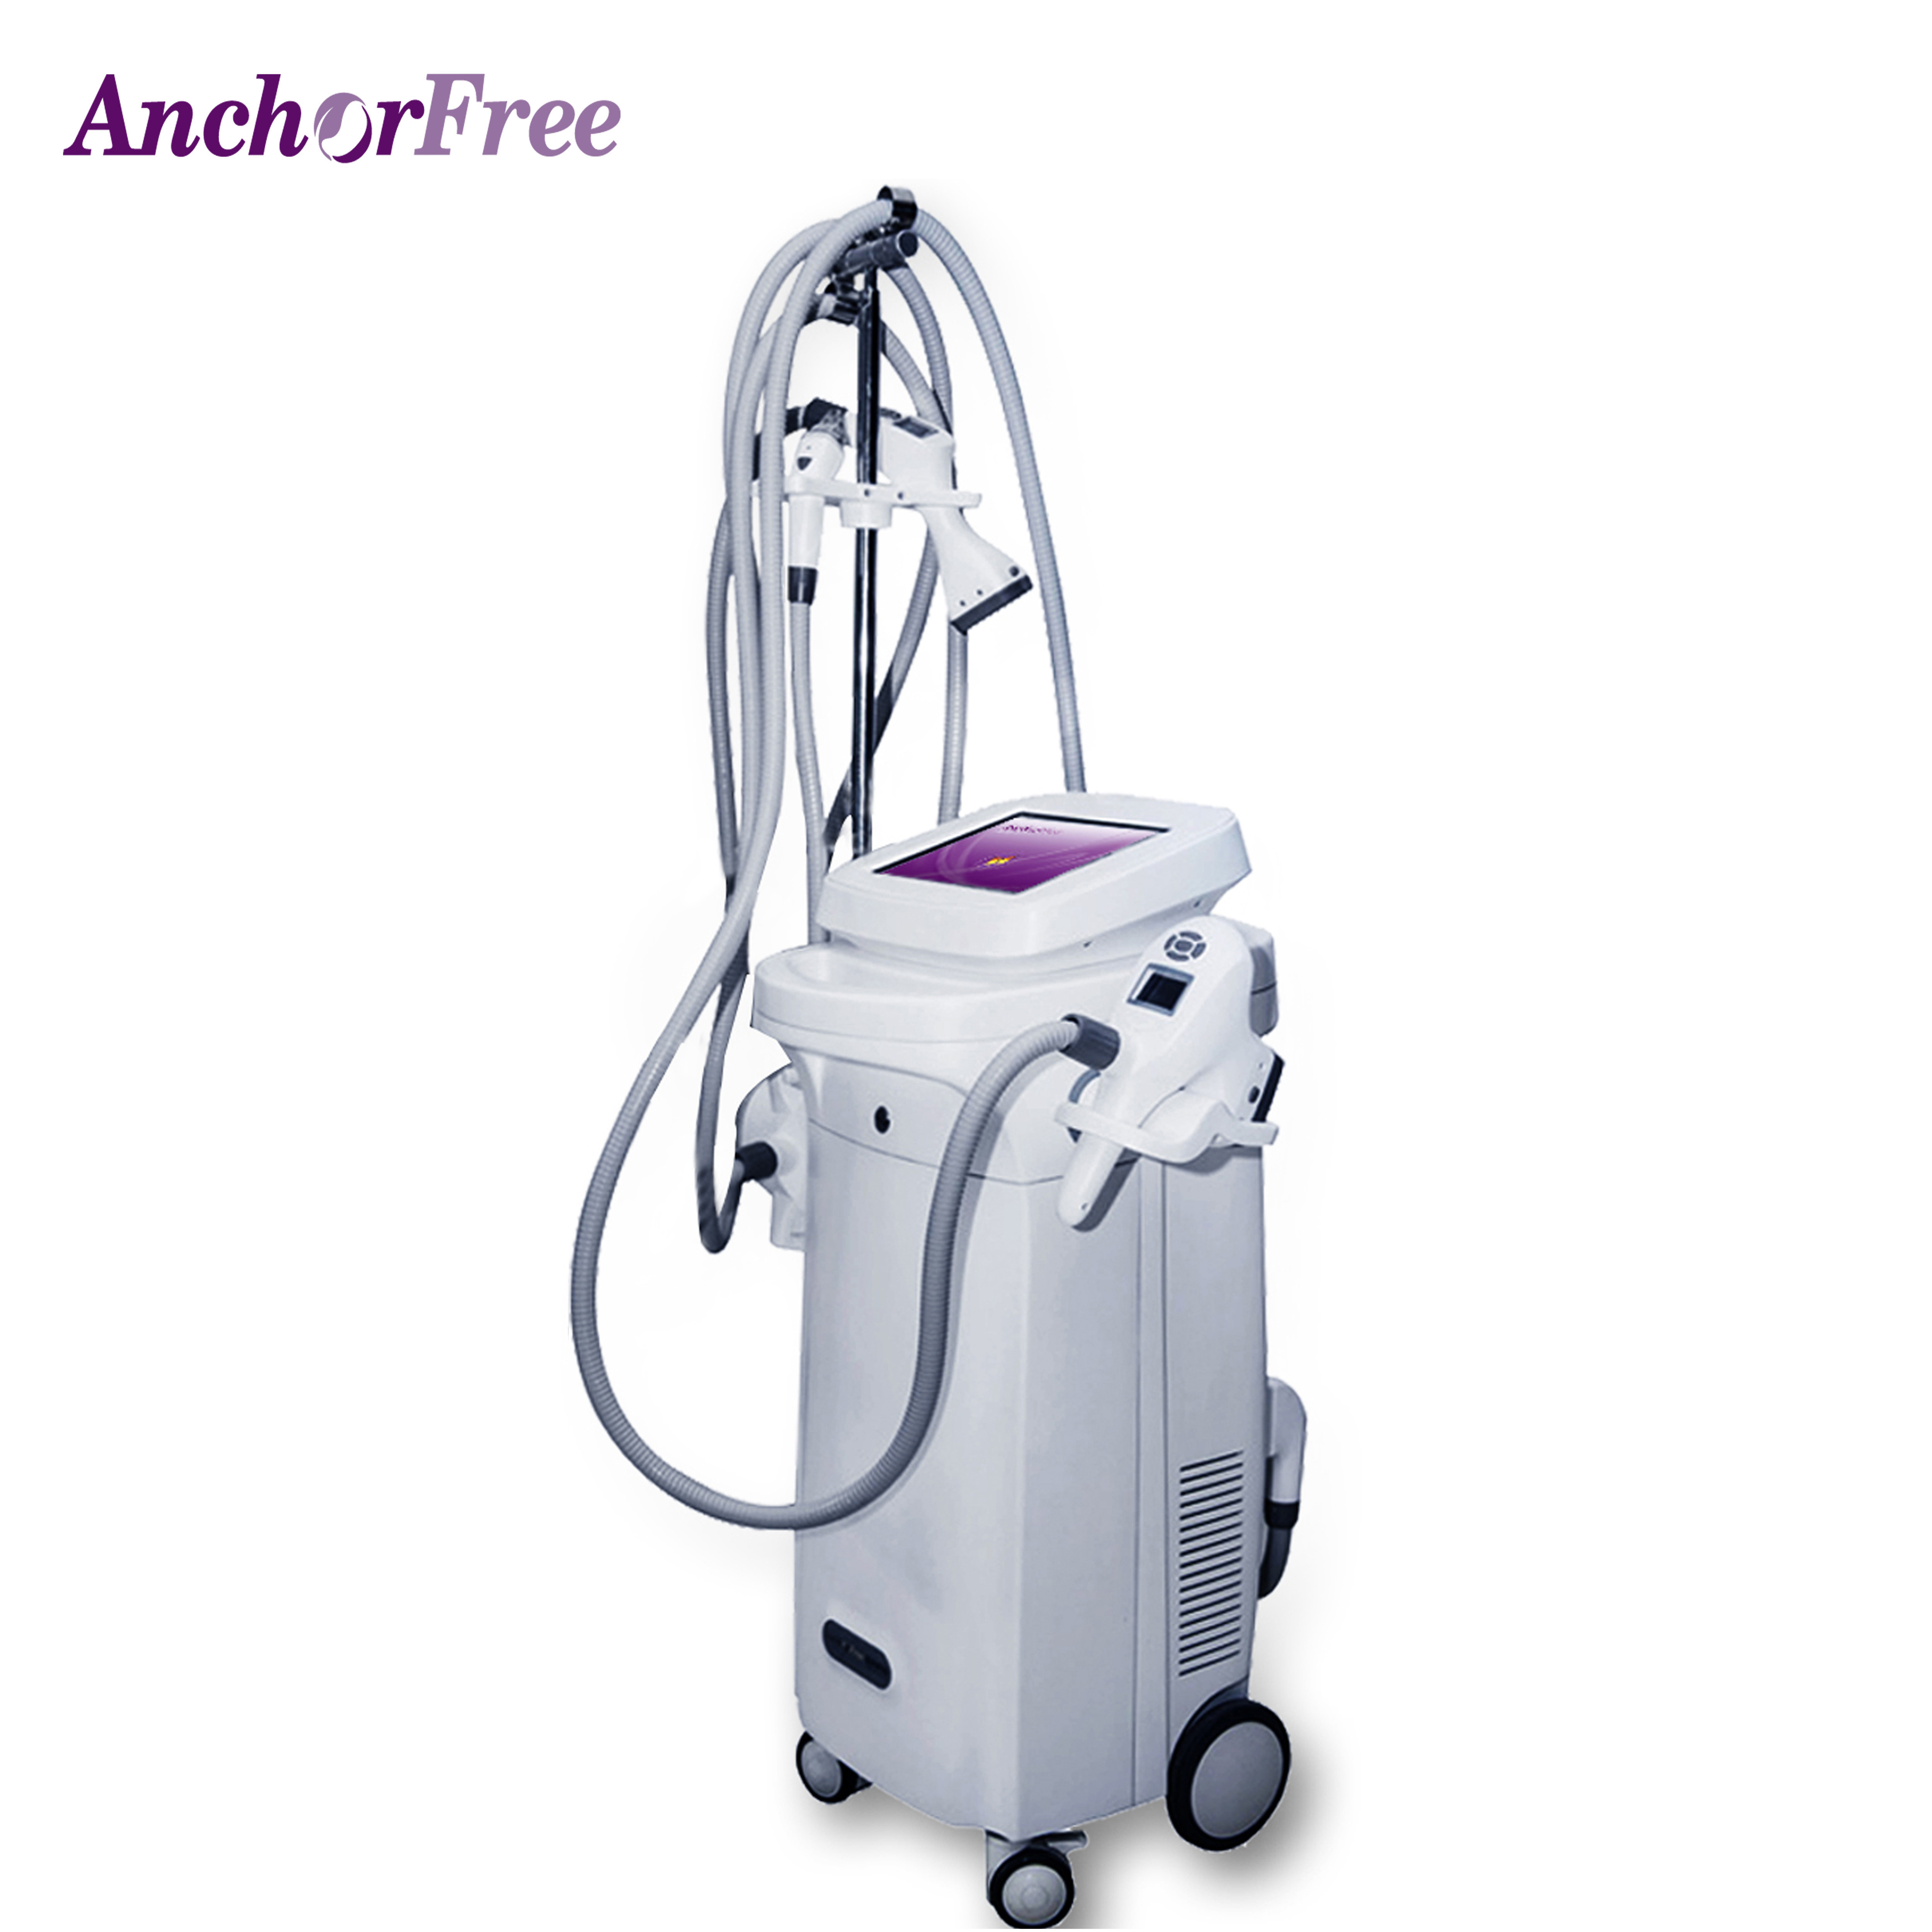 Cavitation Vacuum Laser RF Roller Cellulite Roller Infrared Physiotherapy Fat Removal System